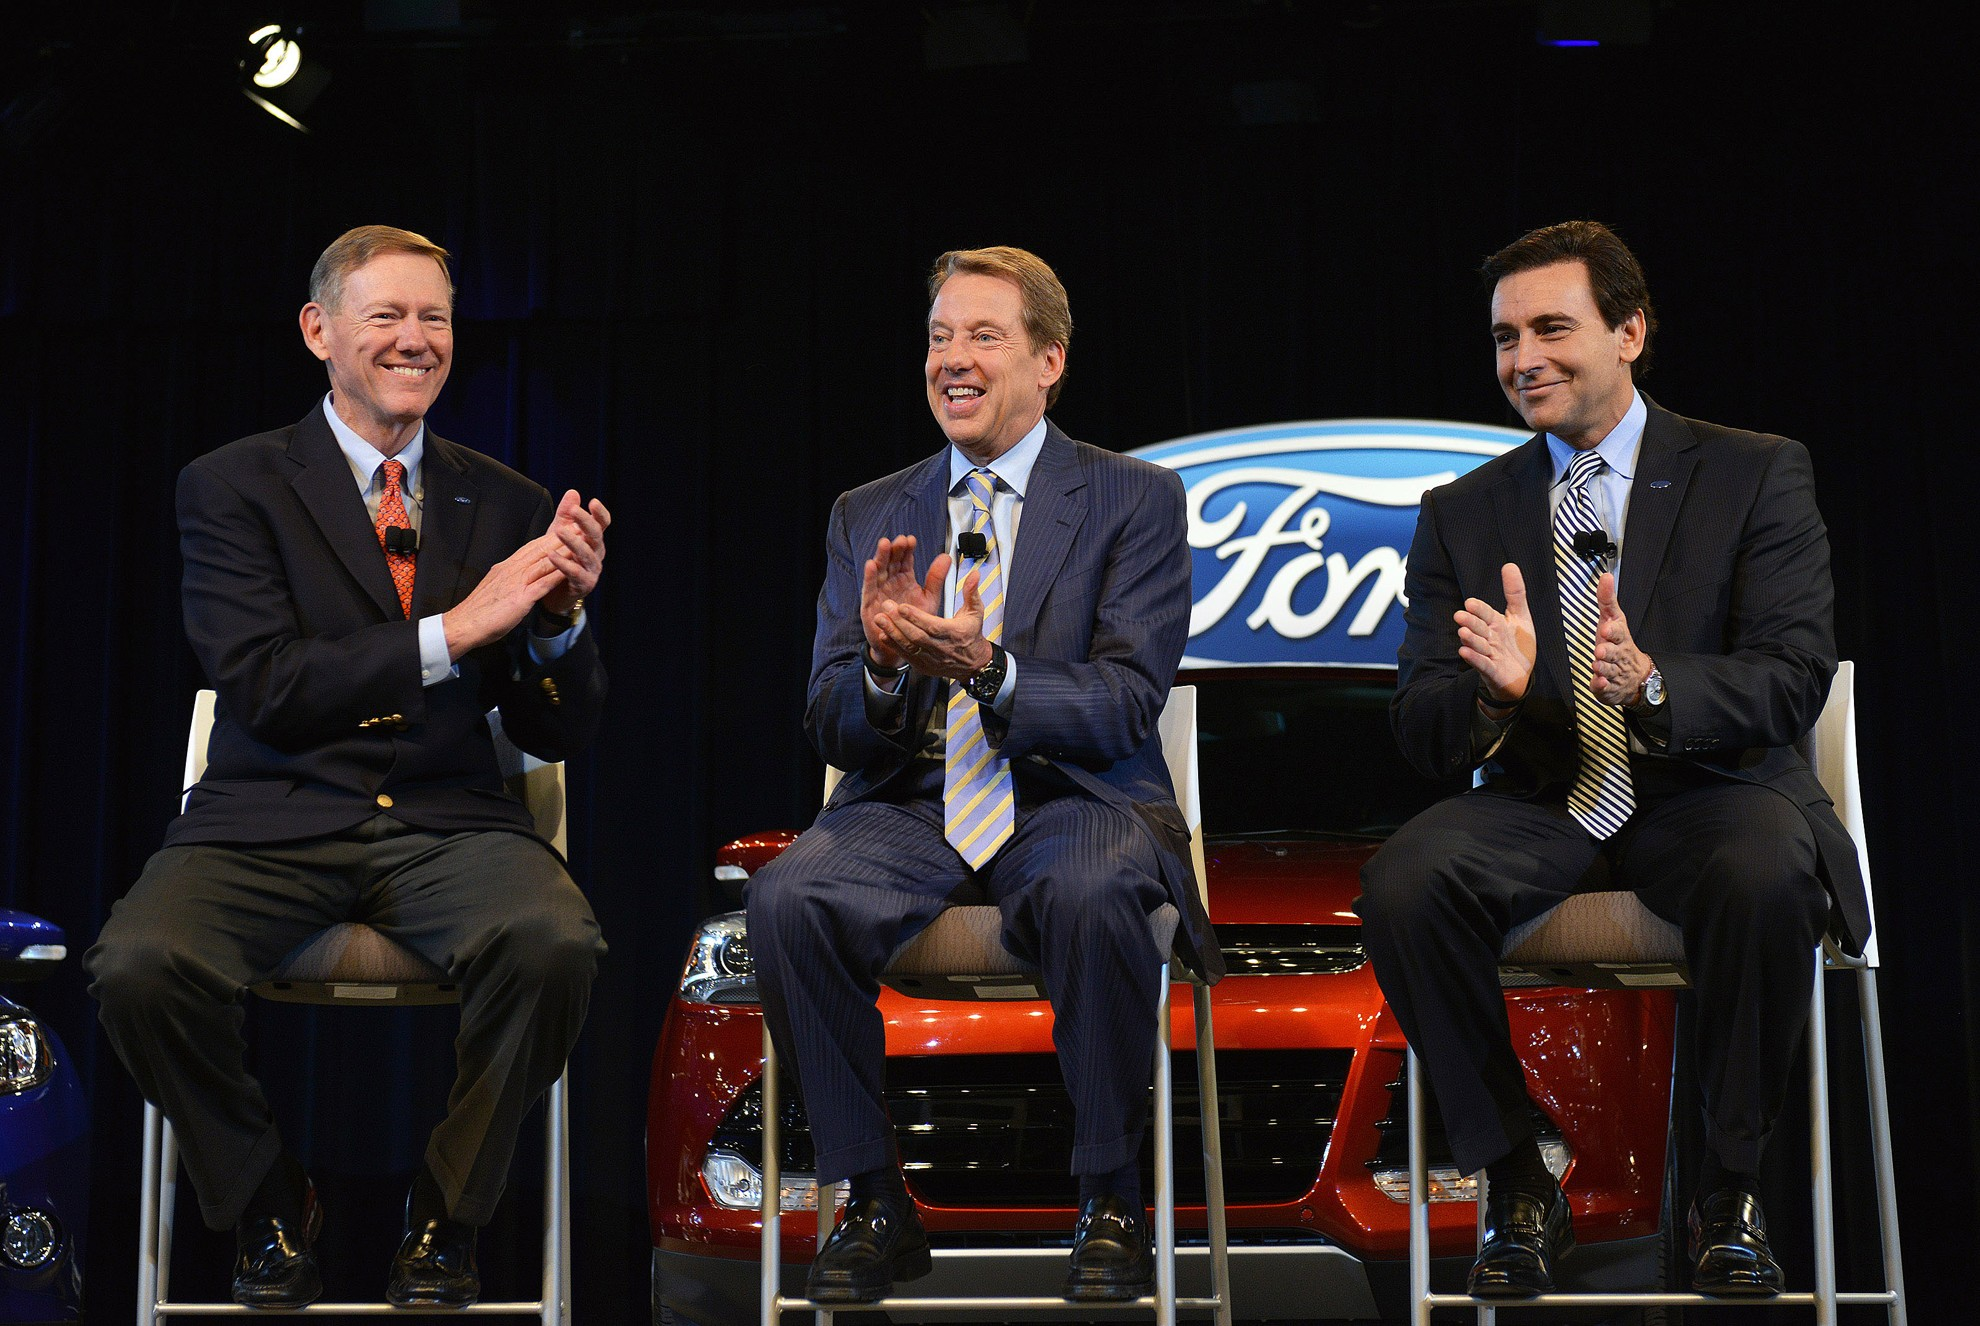 Alan mulally to retire from ford motor company for Ford motor company alan mulally